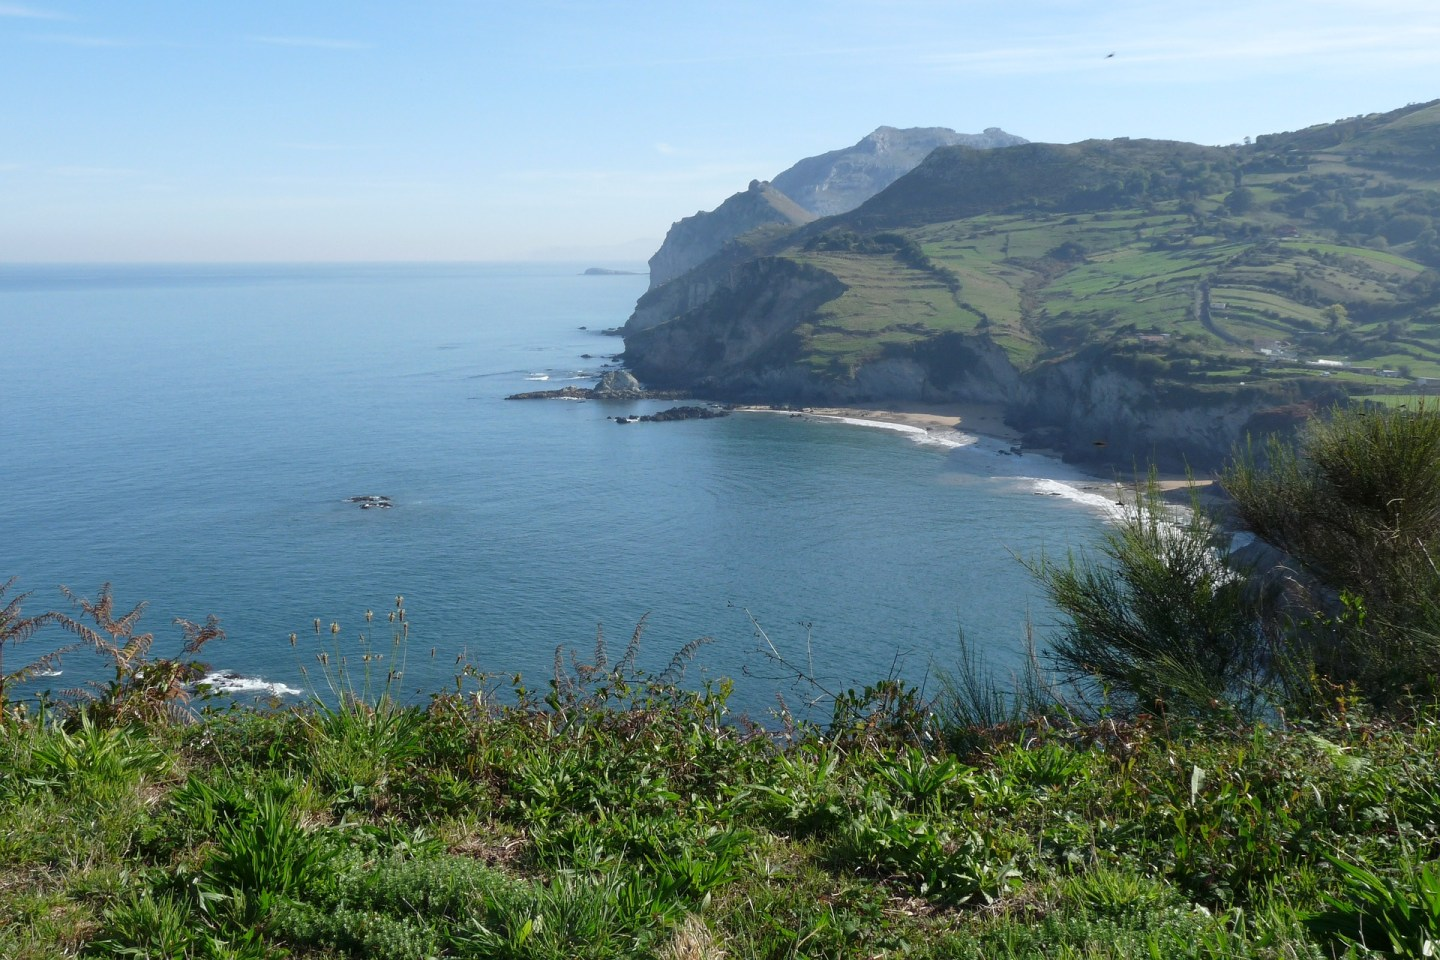 Spain misconceptions - Cantabria